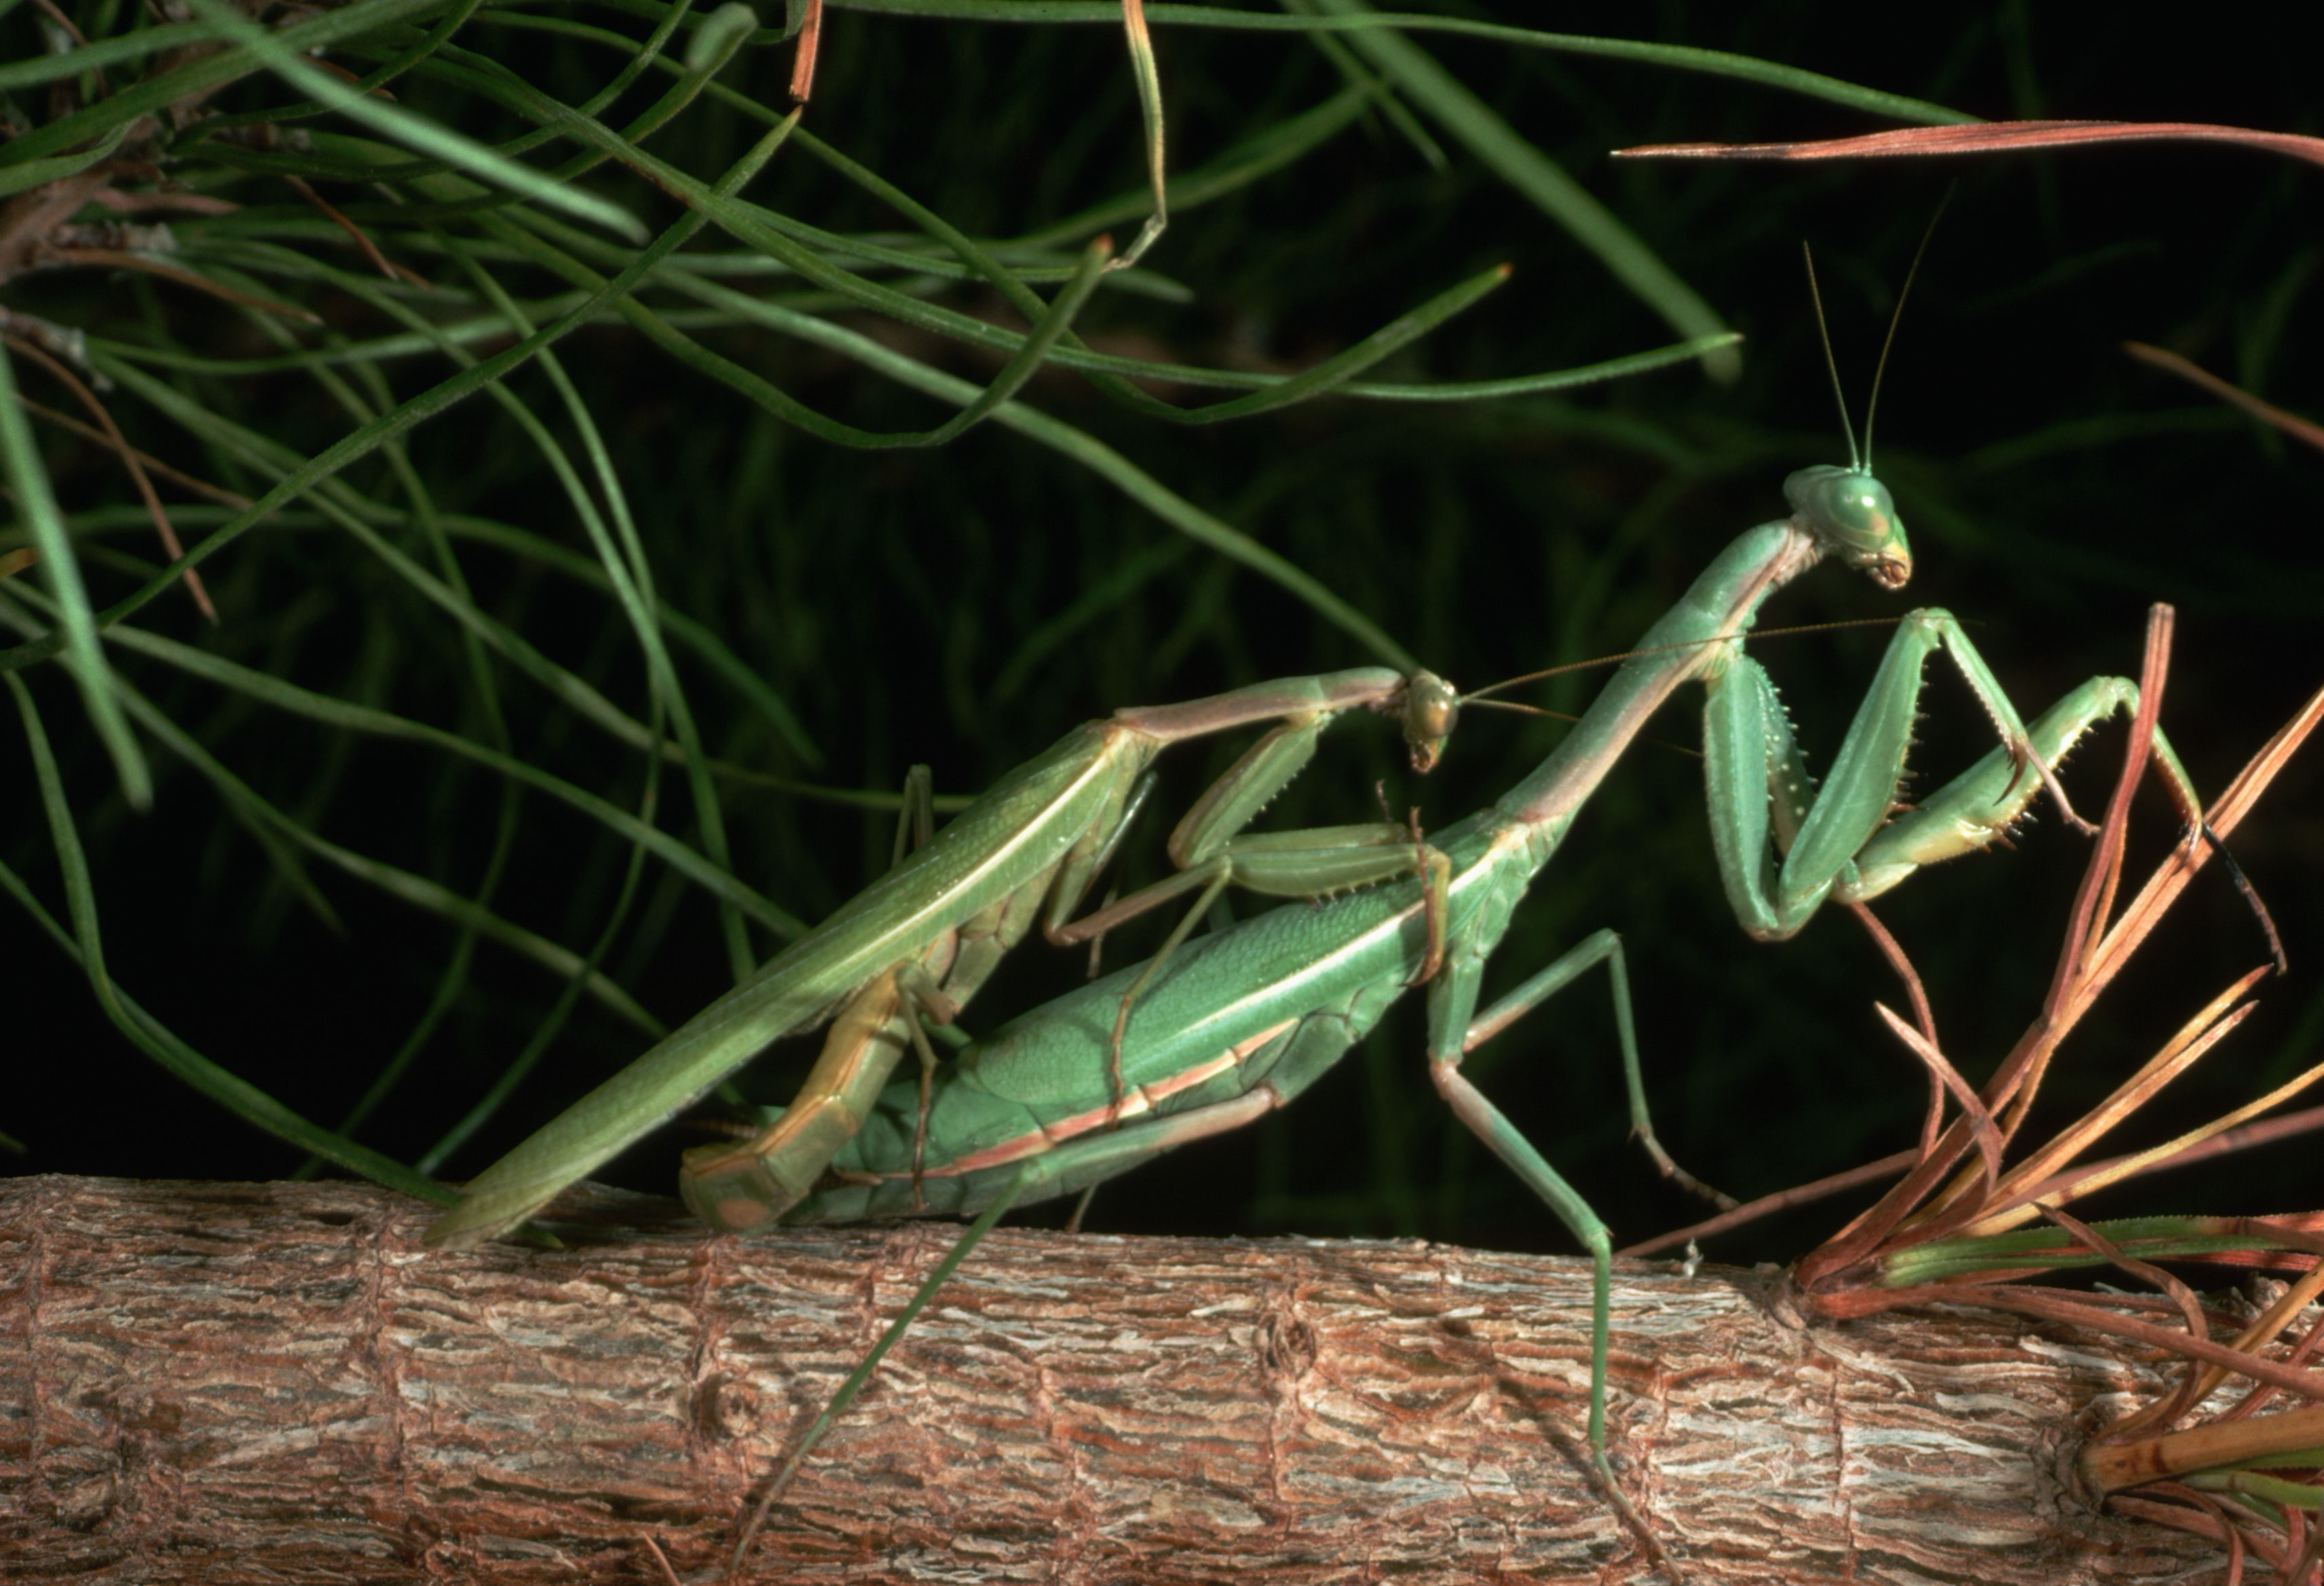 Praying Mantis Sex and Cannibalism